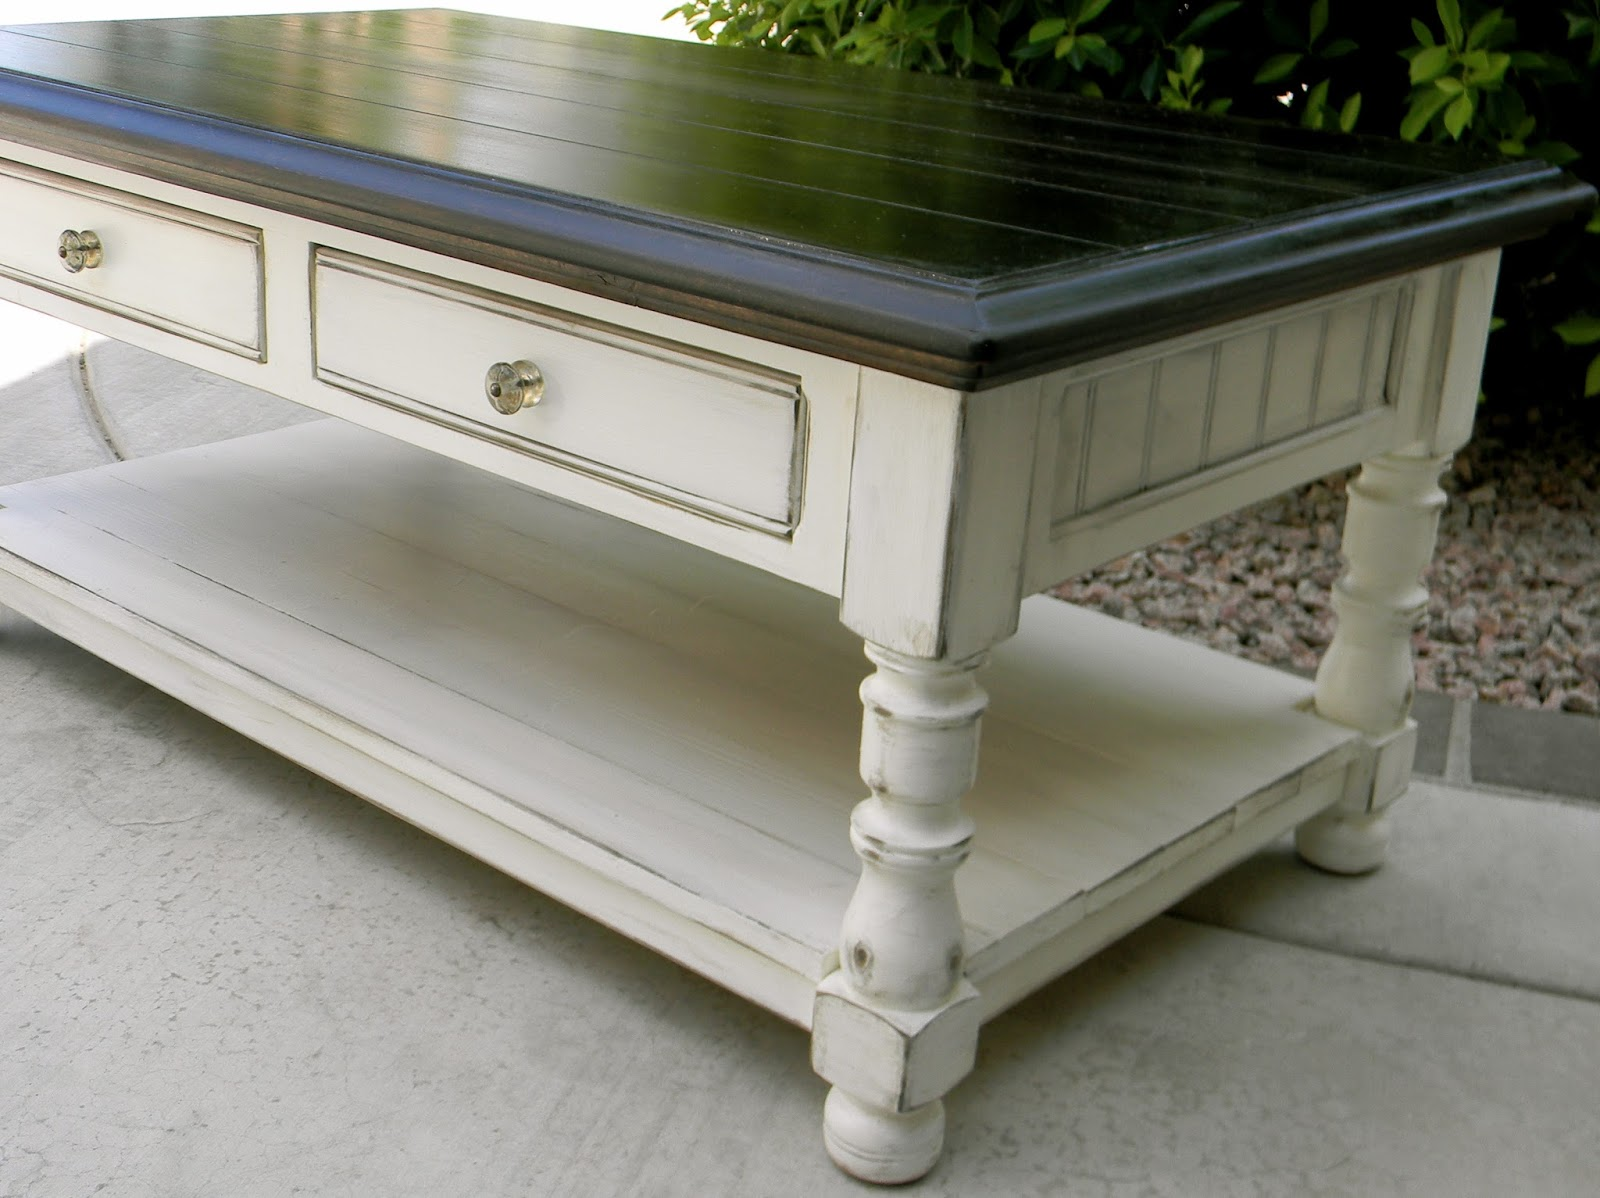 Little Bit of Paint: Refinished Coffee Table